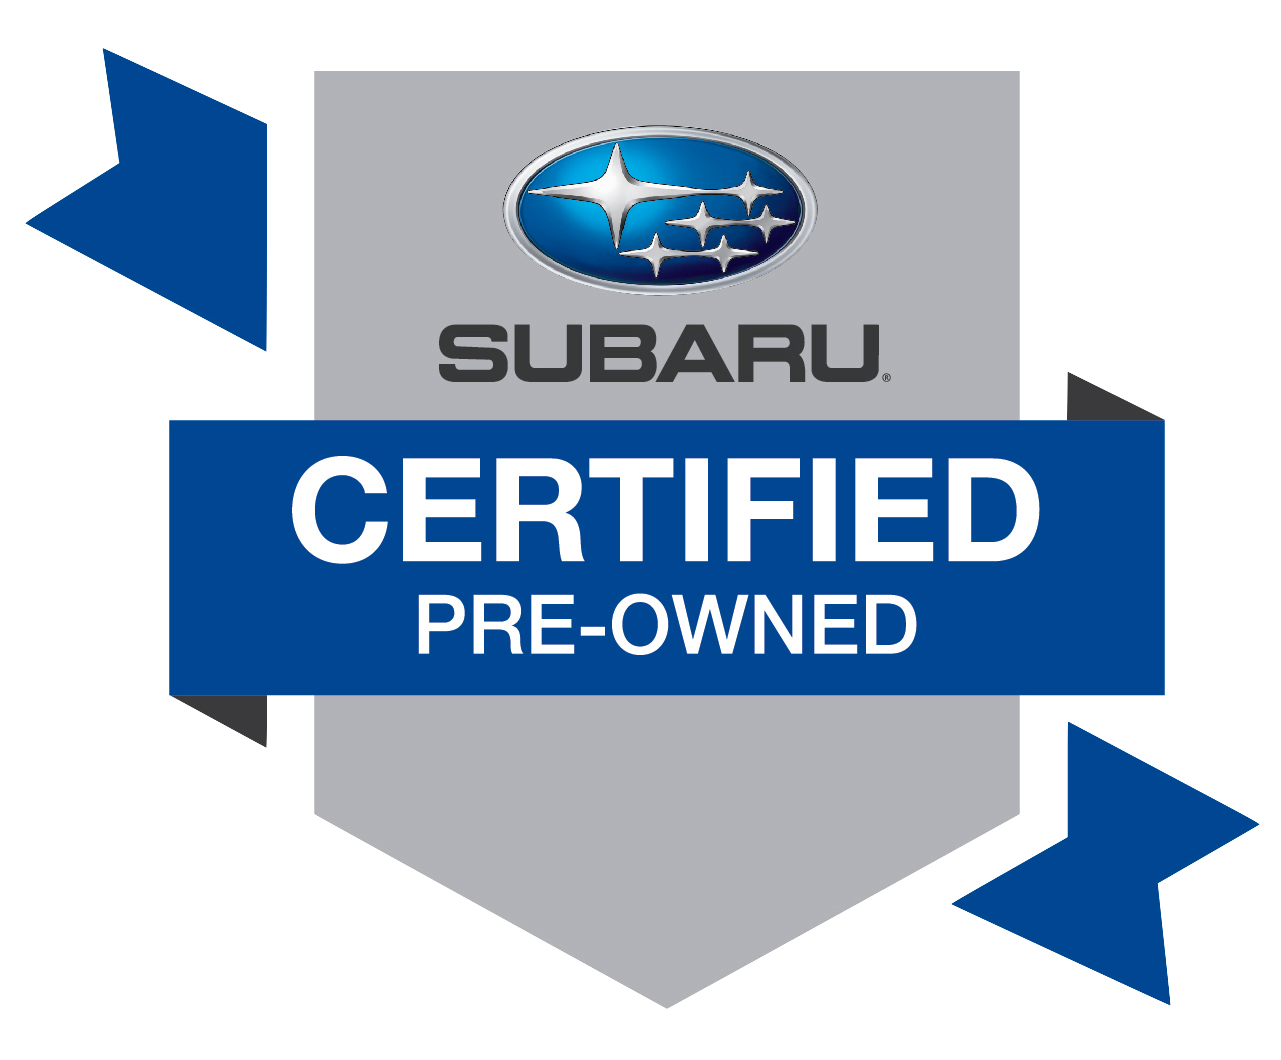 Subaru Certified Pre Owned >> Subaru Certified Pre Owned Program Buyer Perks